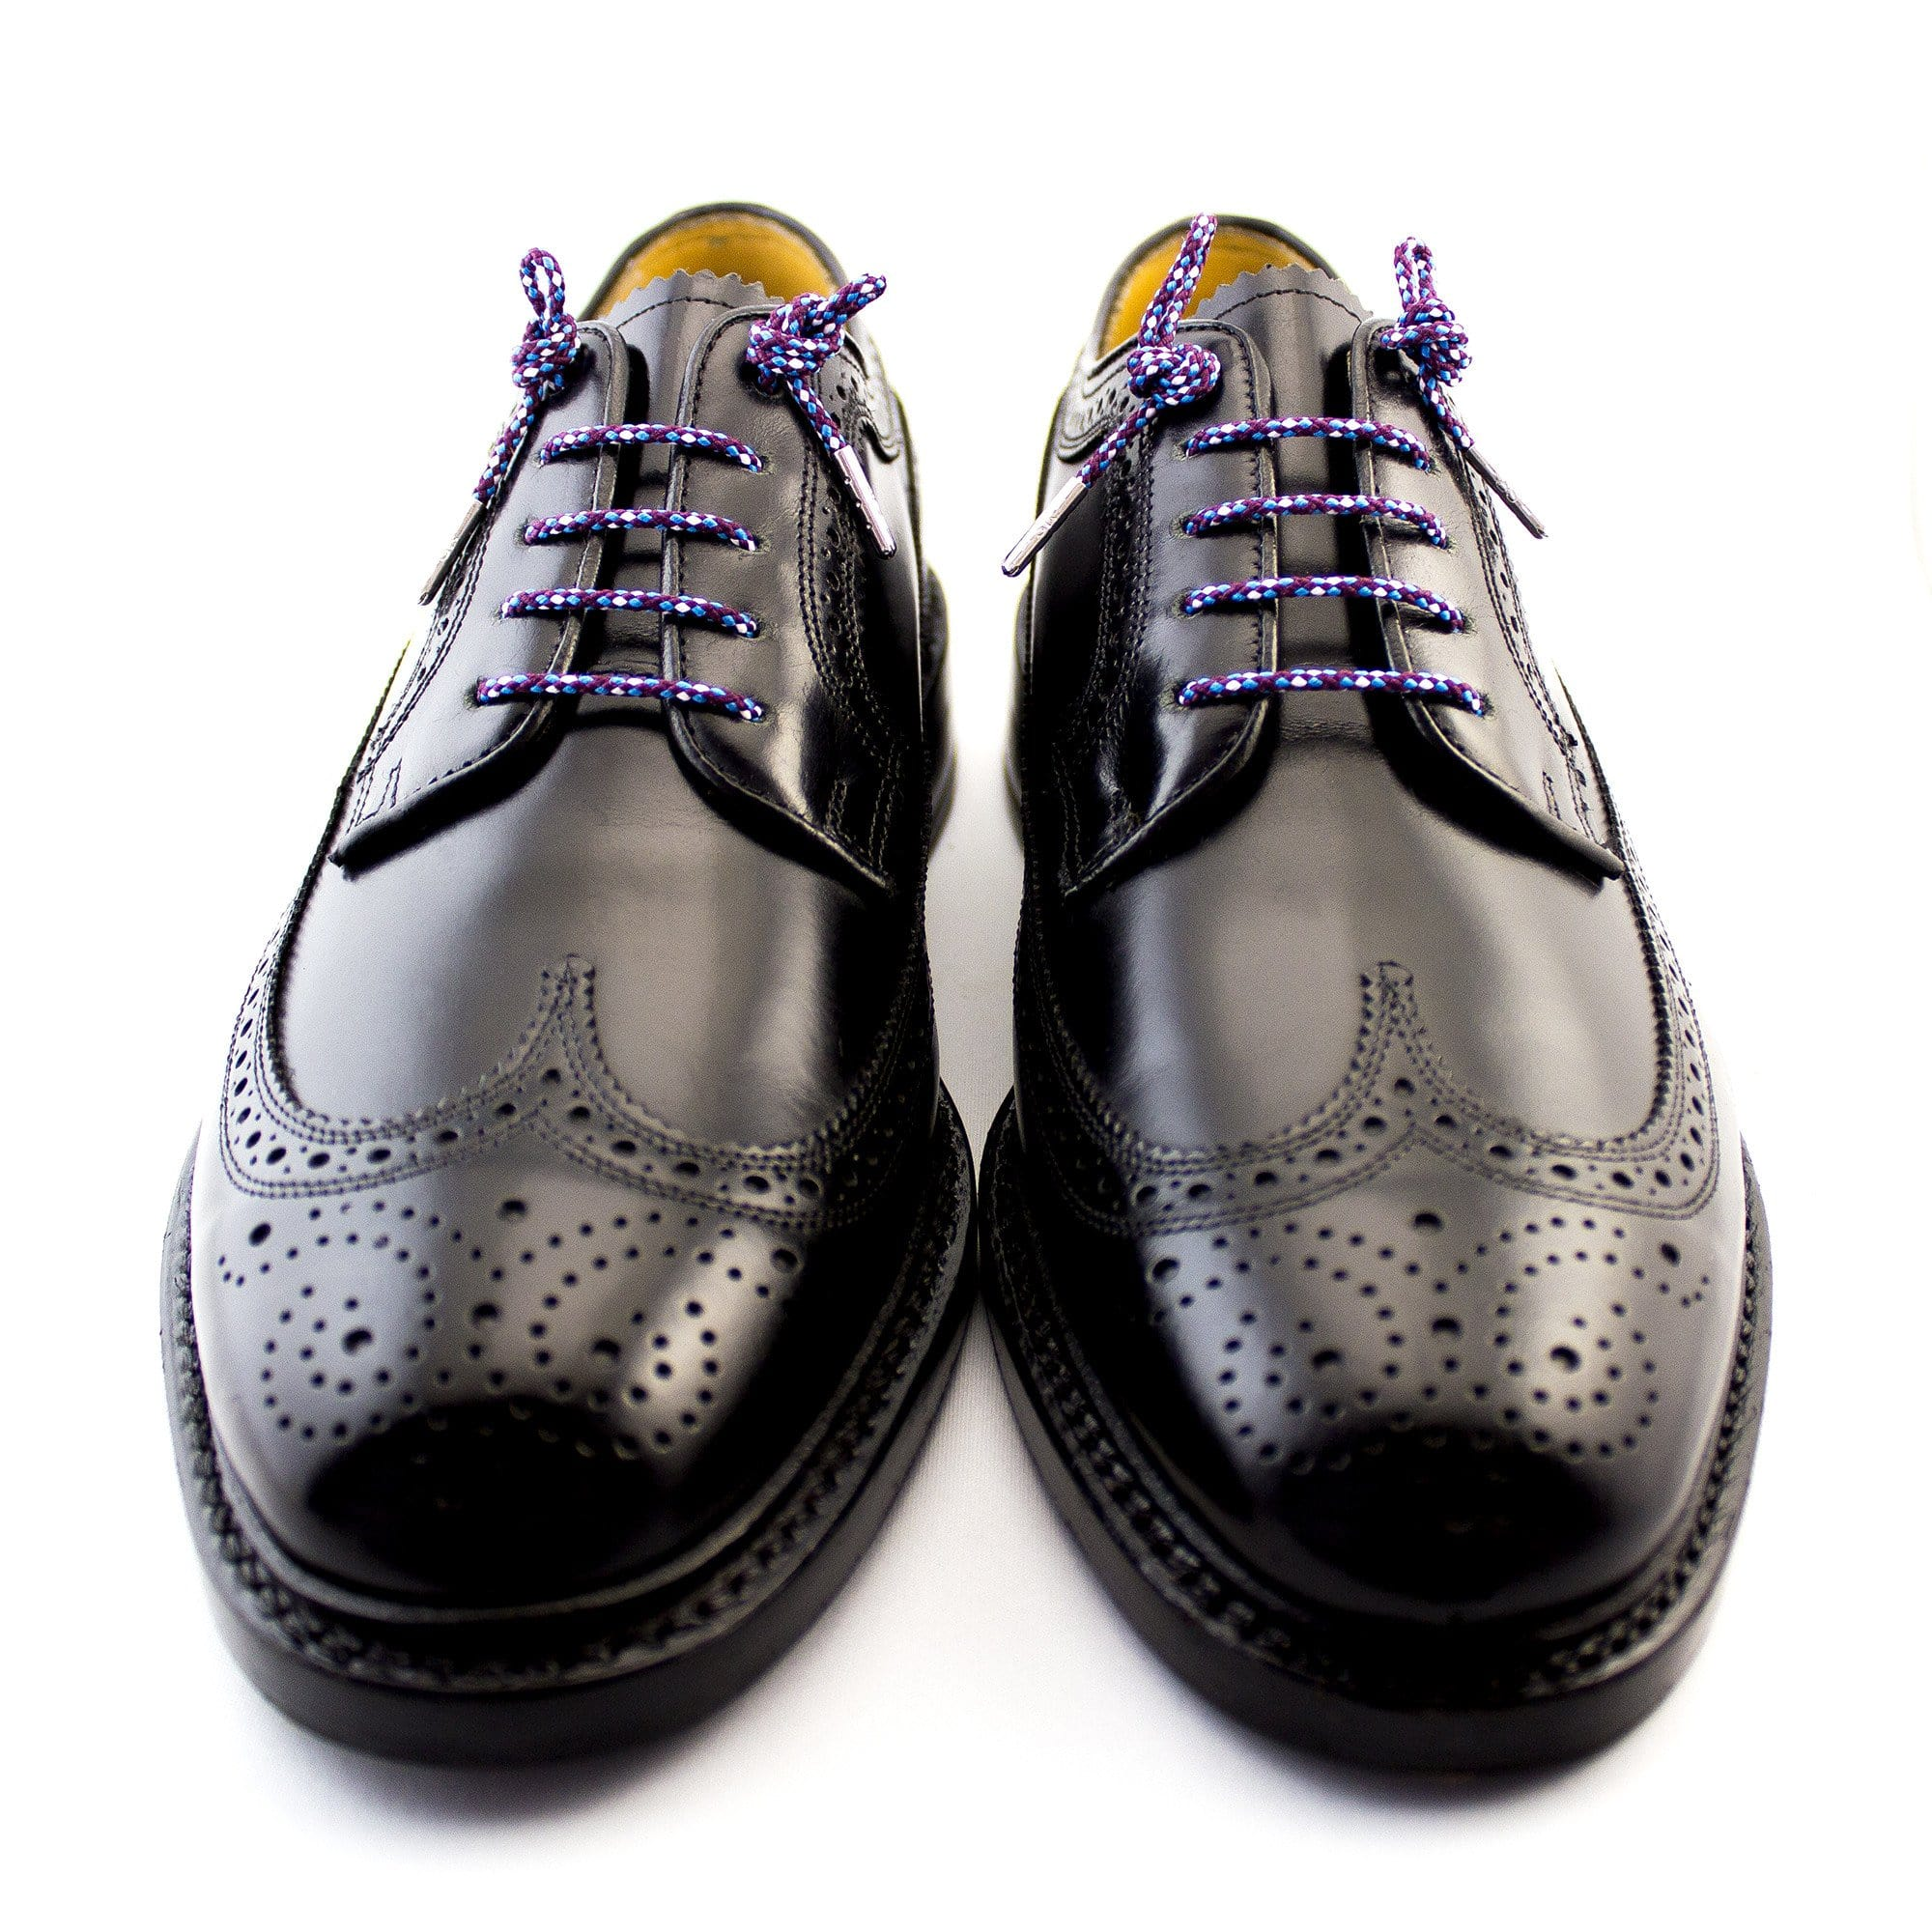 "Blue, white and purple laces for dress shoes, Length: 32""/81cm-Stolen Riches"